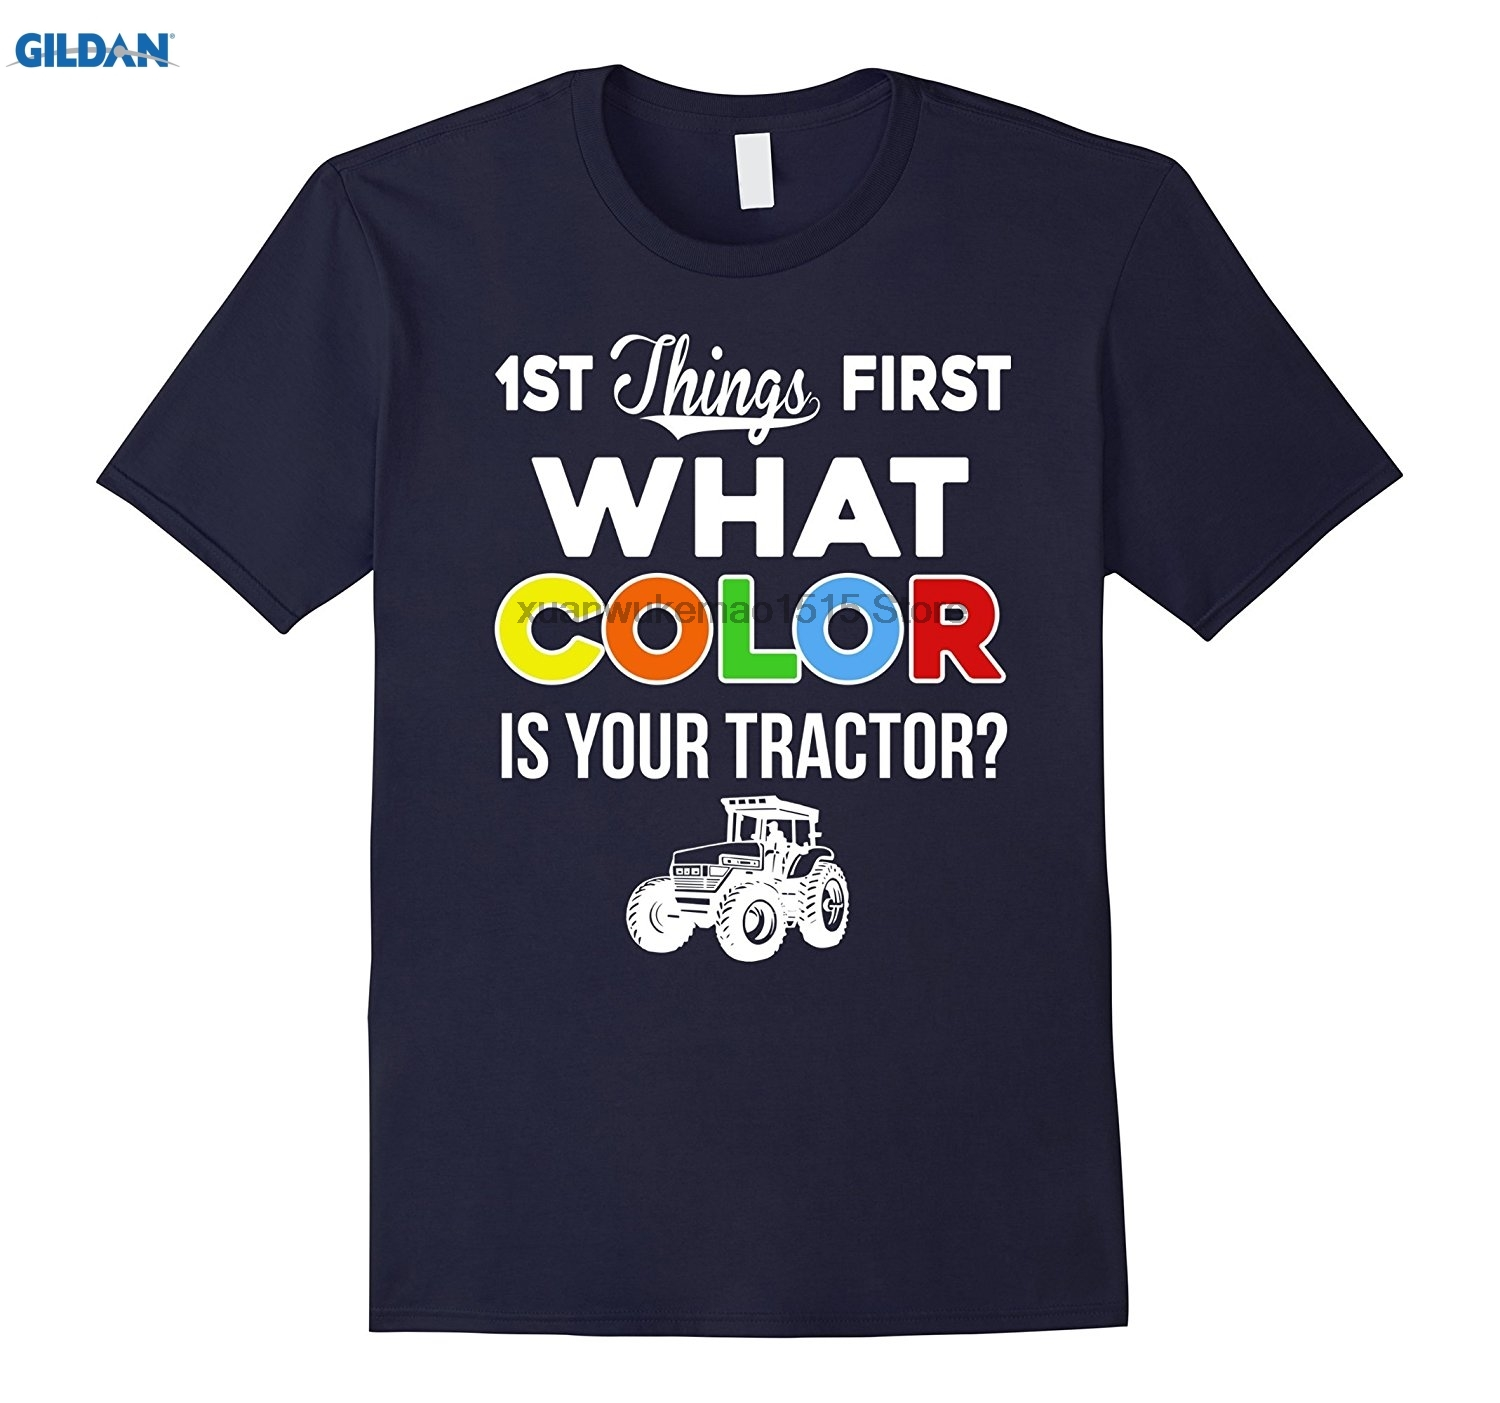 GILDAN 100% Cotton O-neck printed T-shirt What Color Is Your Tractor T-Shirt Funny Farmer Tee Gift ...